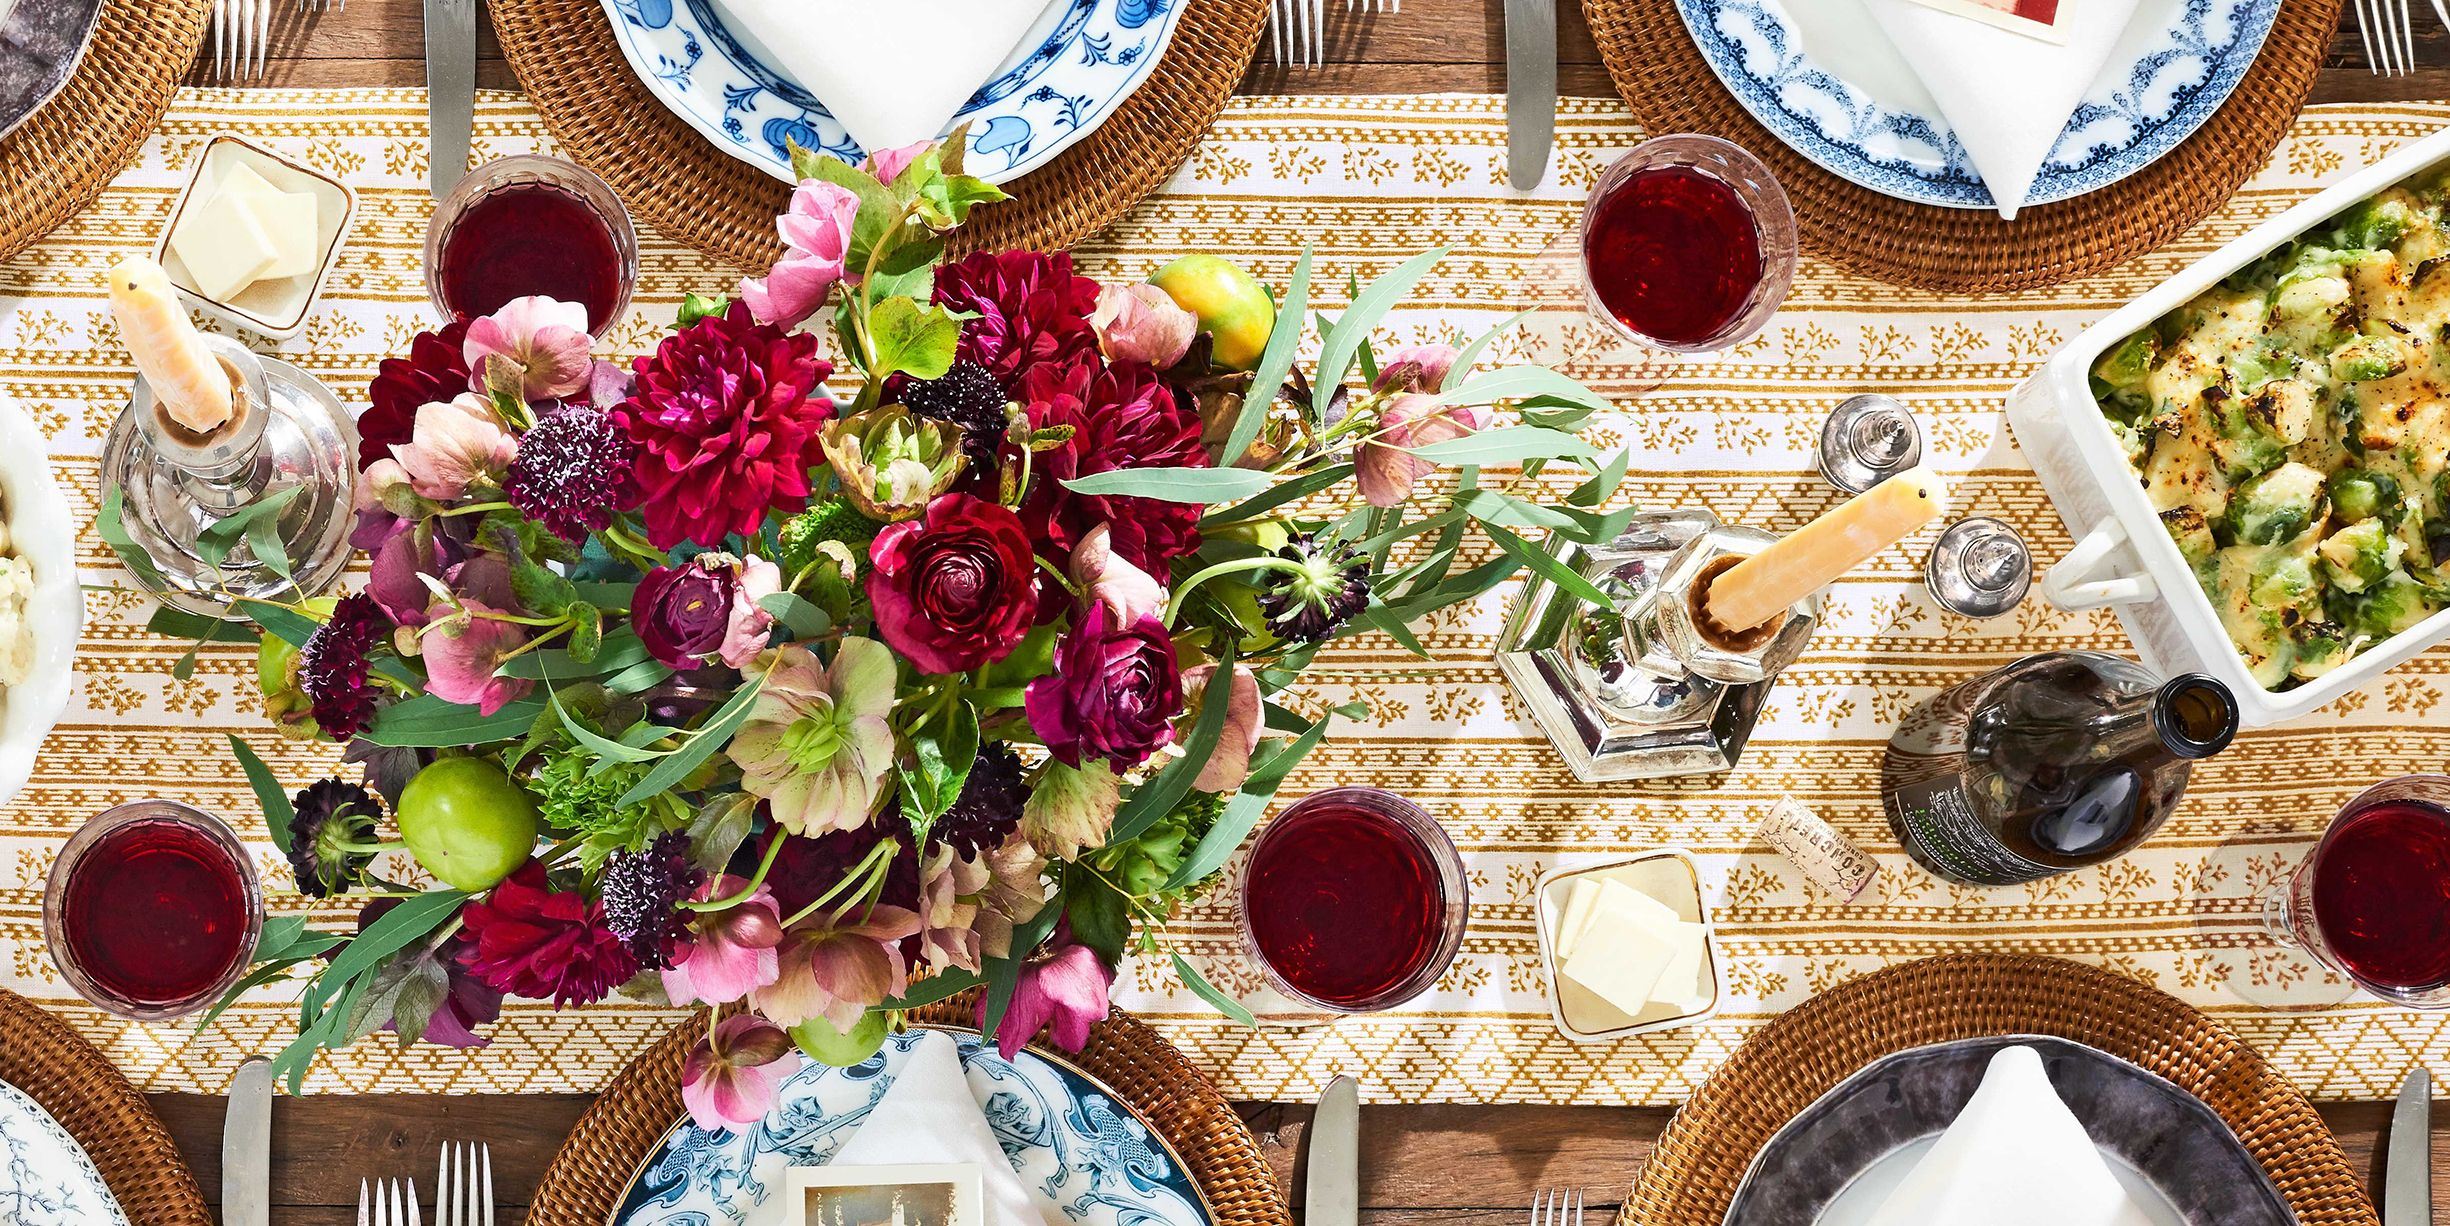 50+ Thanksgiving Centerpieces That Will Make Your Table Shine